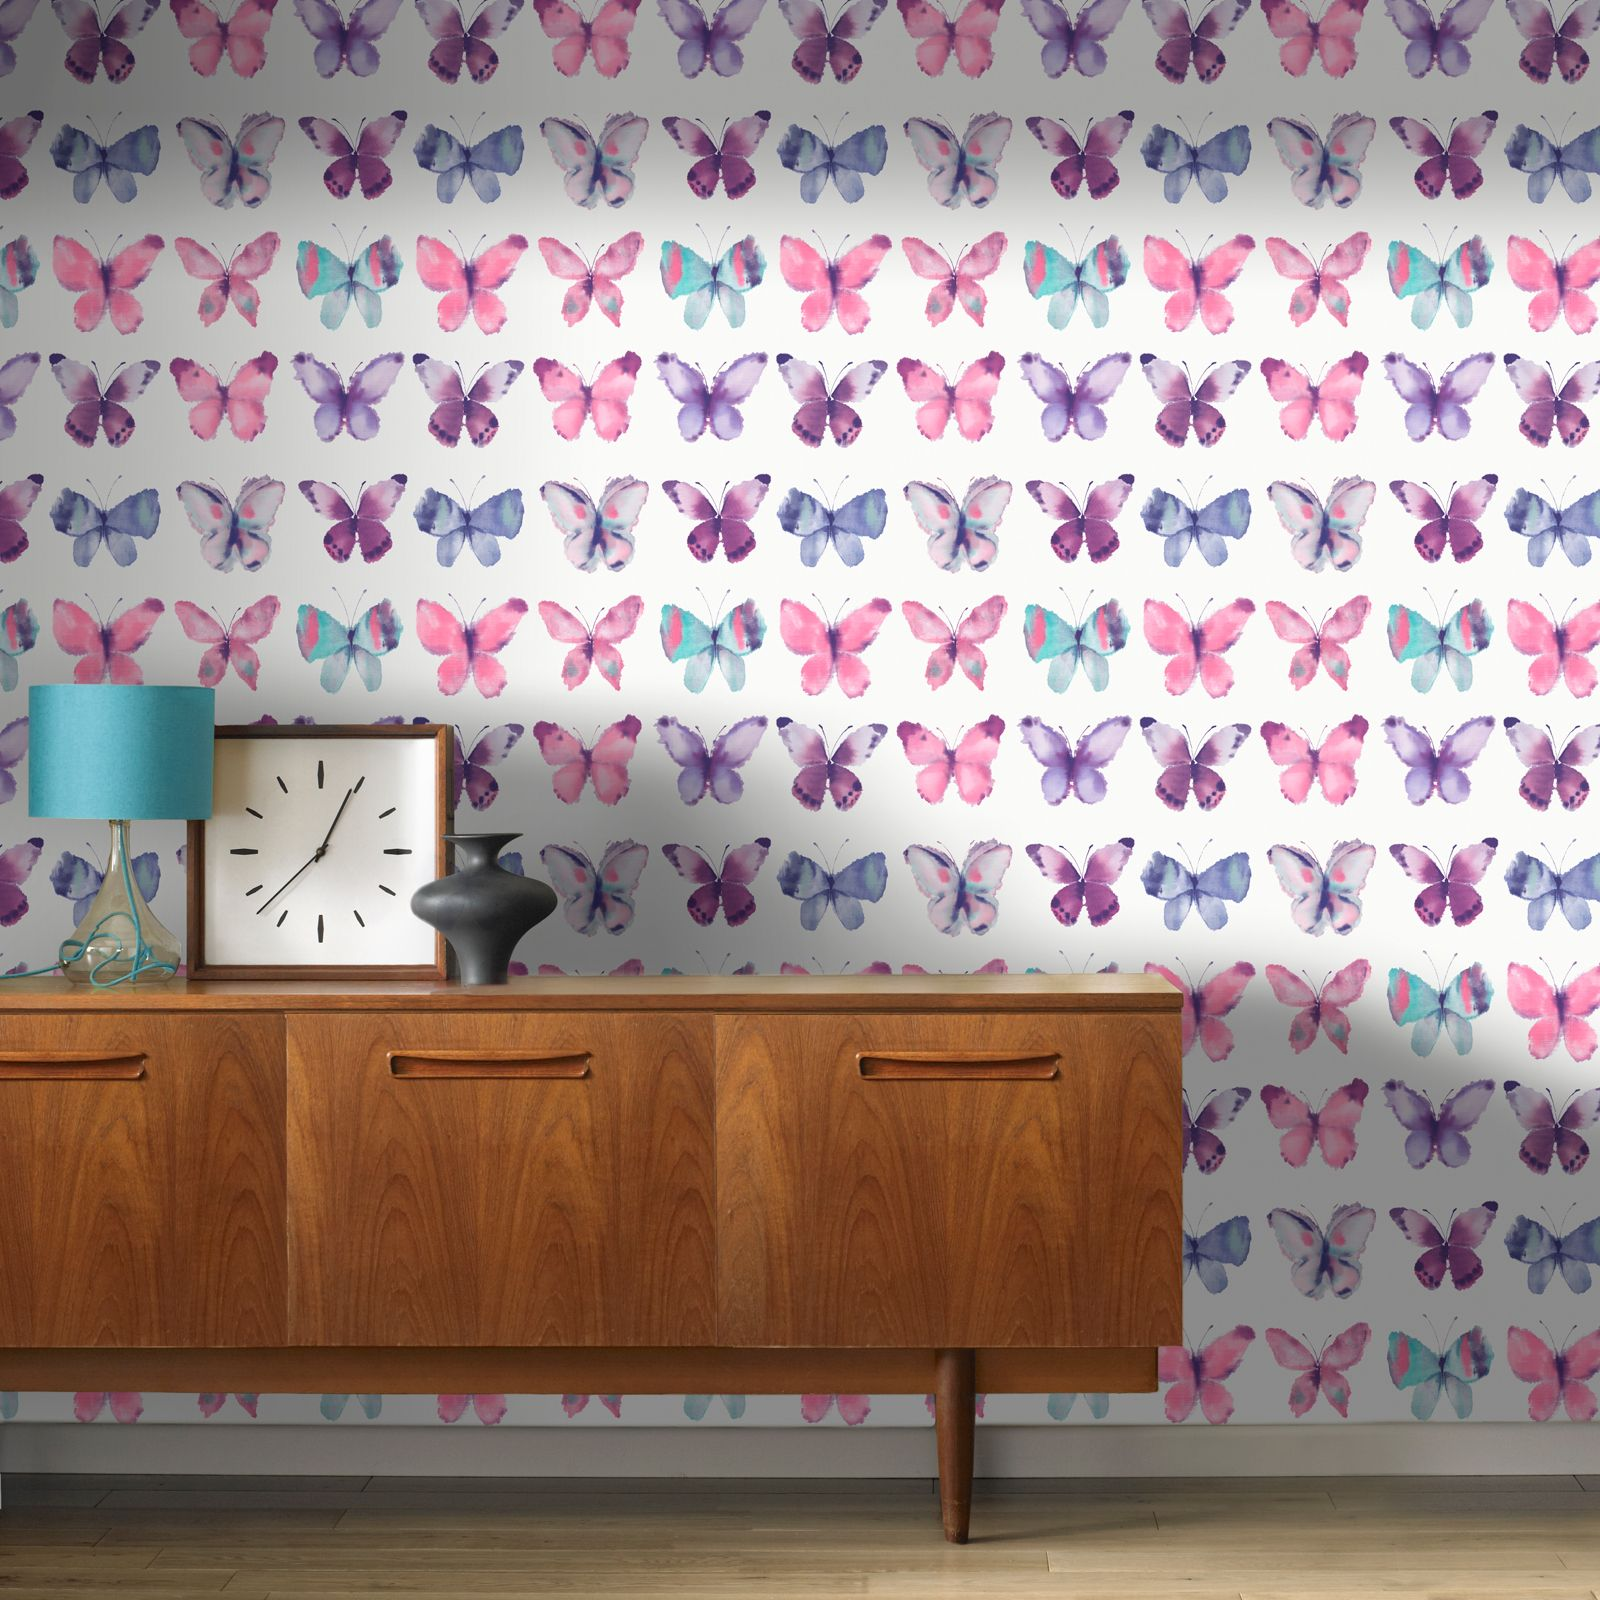 Pink butterflies wallpaper rasch 273618 new butterfly for Butterfly bedroom ideas